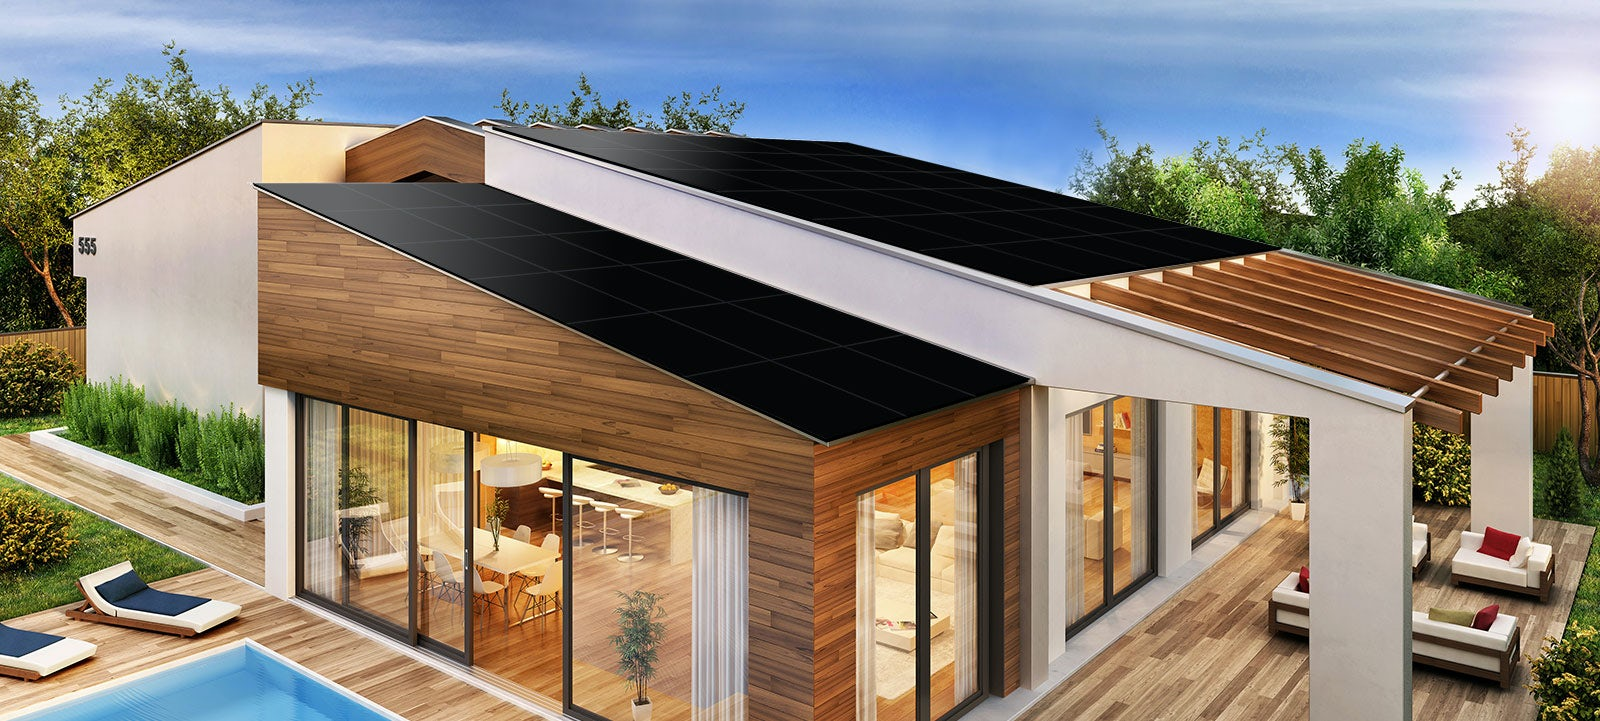 solar power roof